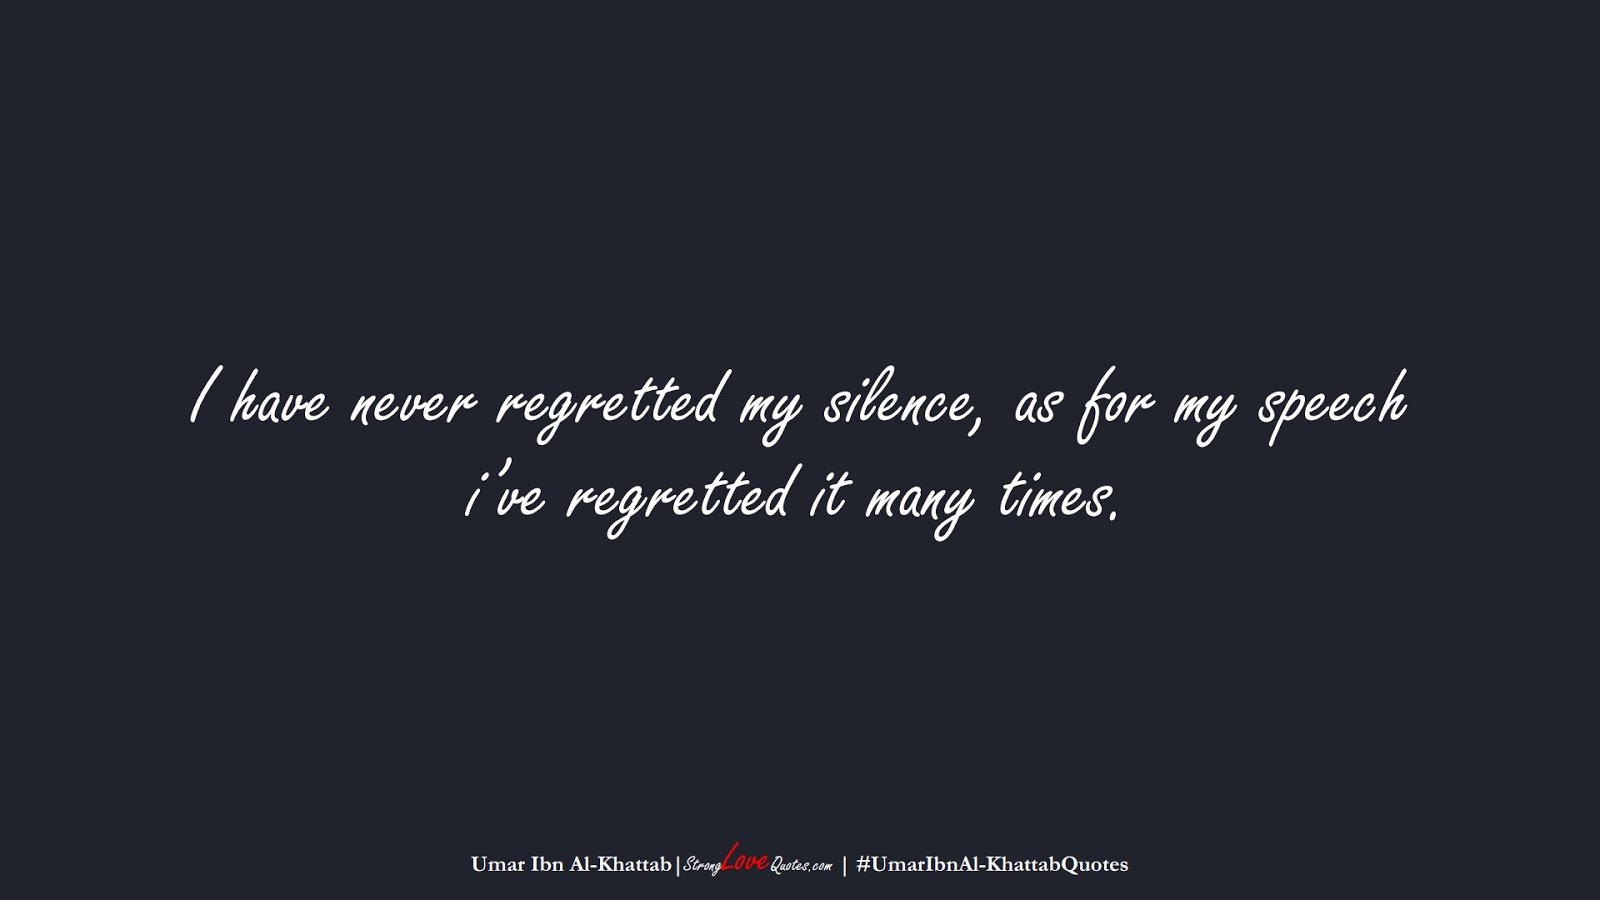 I have never regretted my silence, as for my speech i've regretted it many times. (Umar Ibn Al-Khattab);  #UmarIbnAl-KhattabQuotes